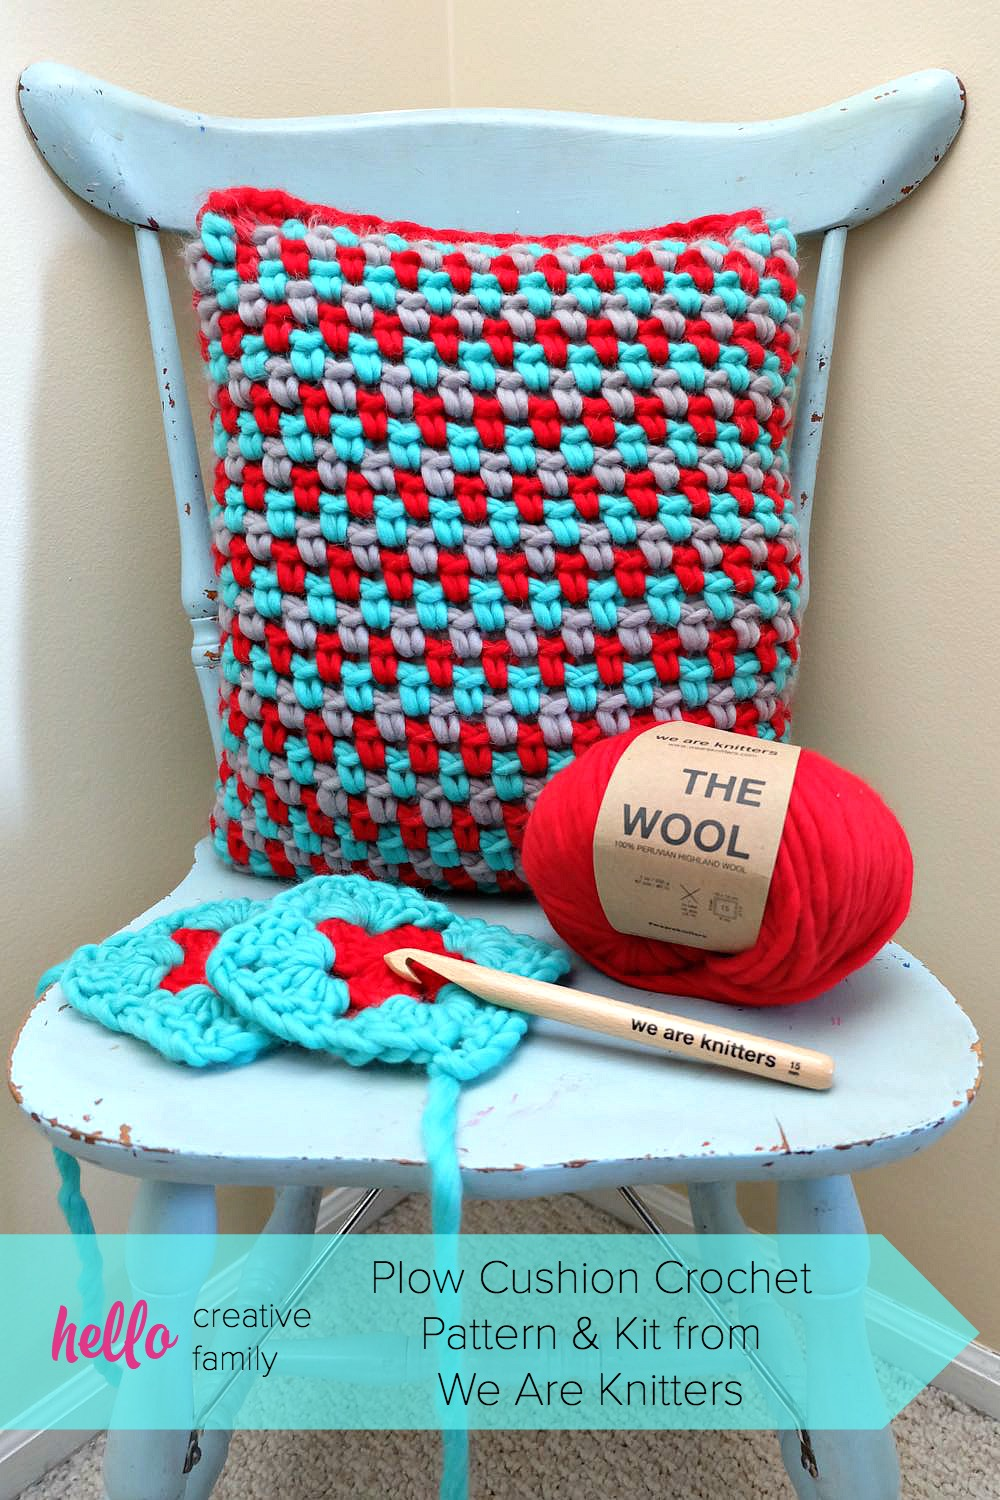 We Are Knitters Plow Cushion Crochet Pattern And Kit From We Are Knitters A